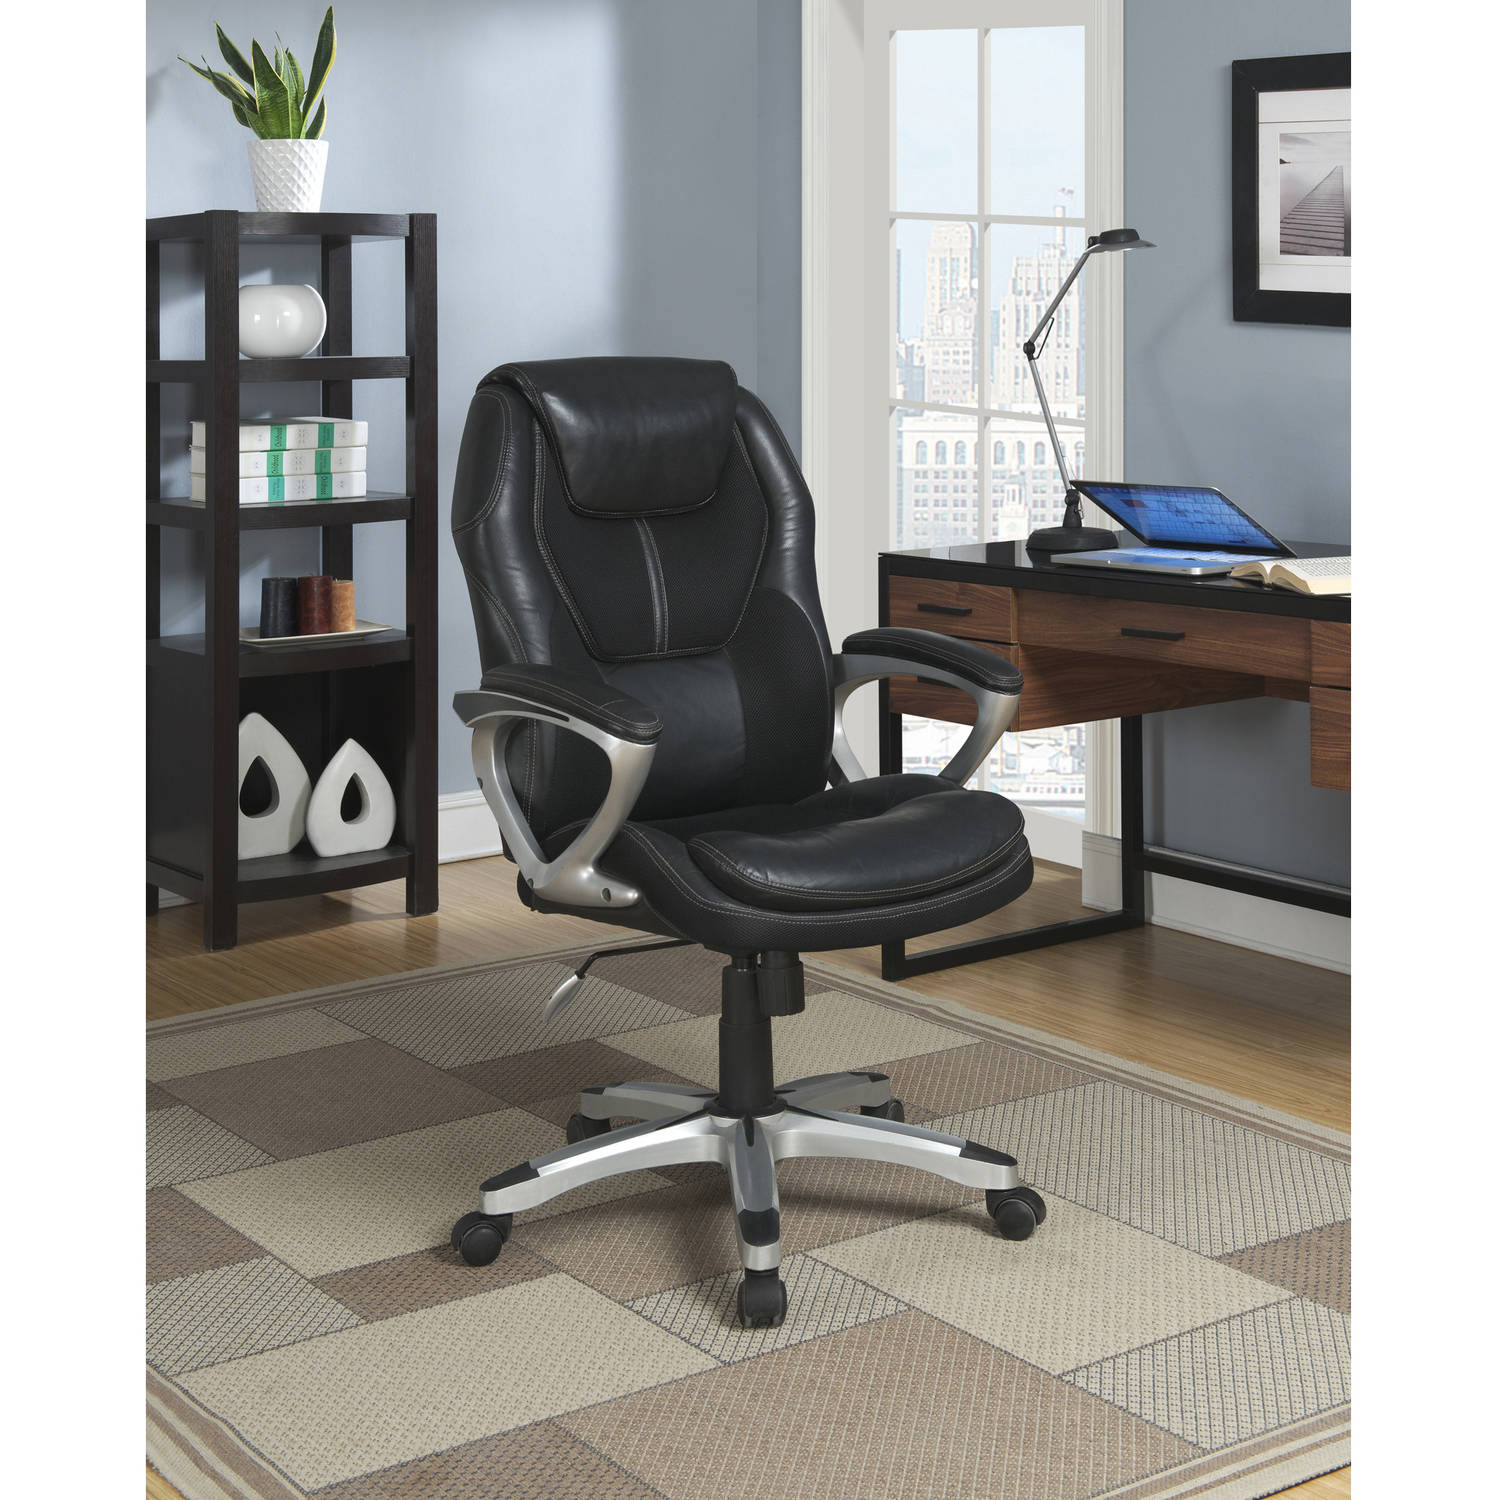 serta executive office chair, puresoft faux leather with mesh